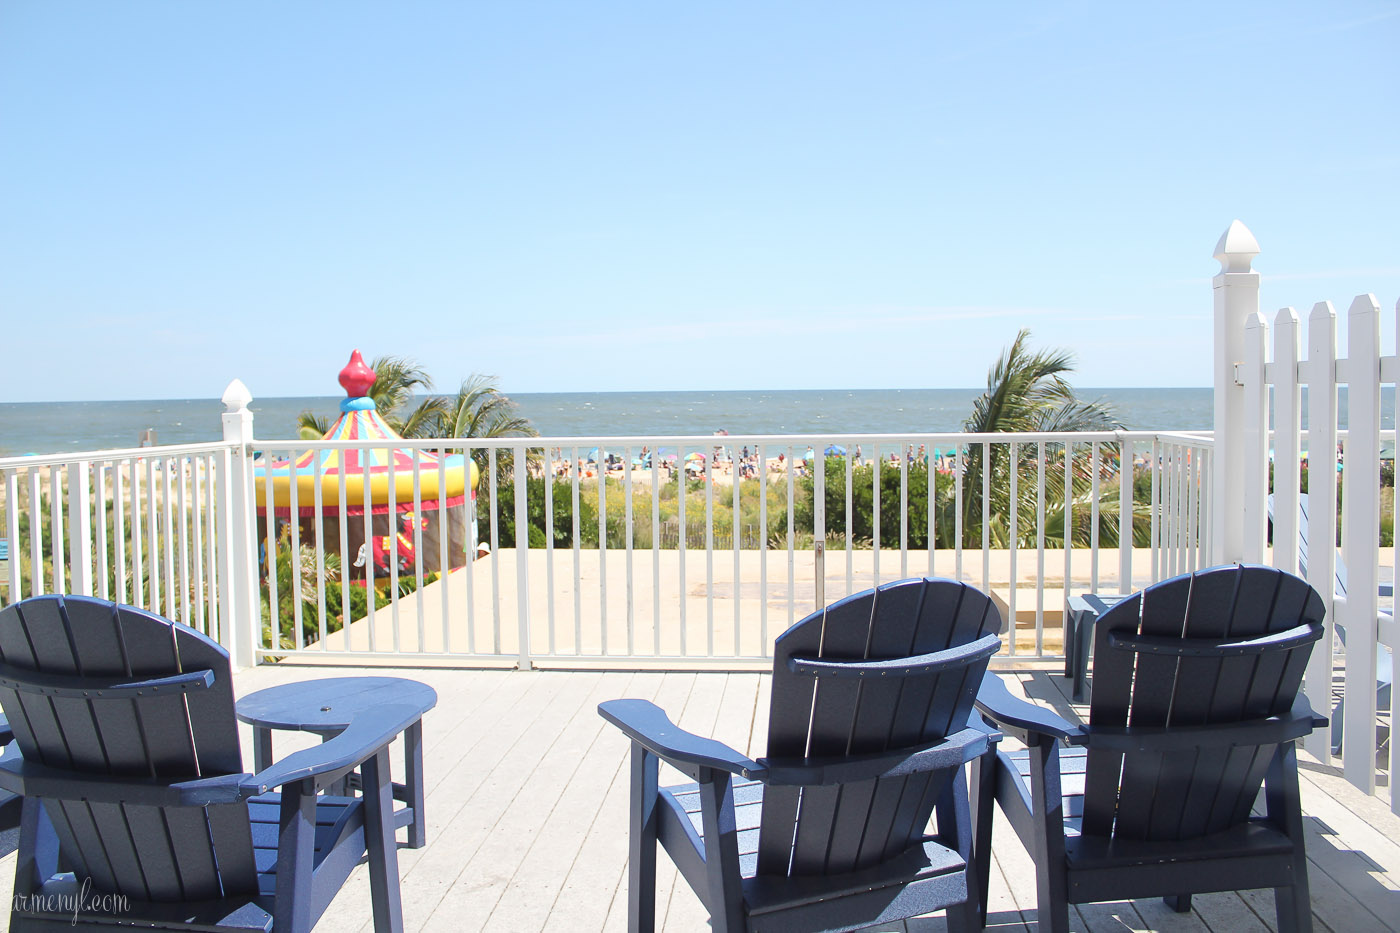 Beach Front View in Ocean City, beach chairs, carousel hotel by photograher Armenyl, armenyl.com